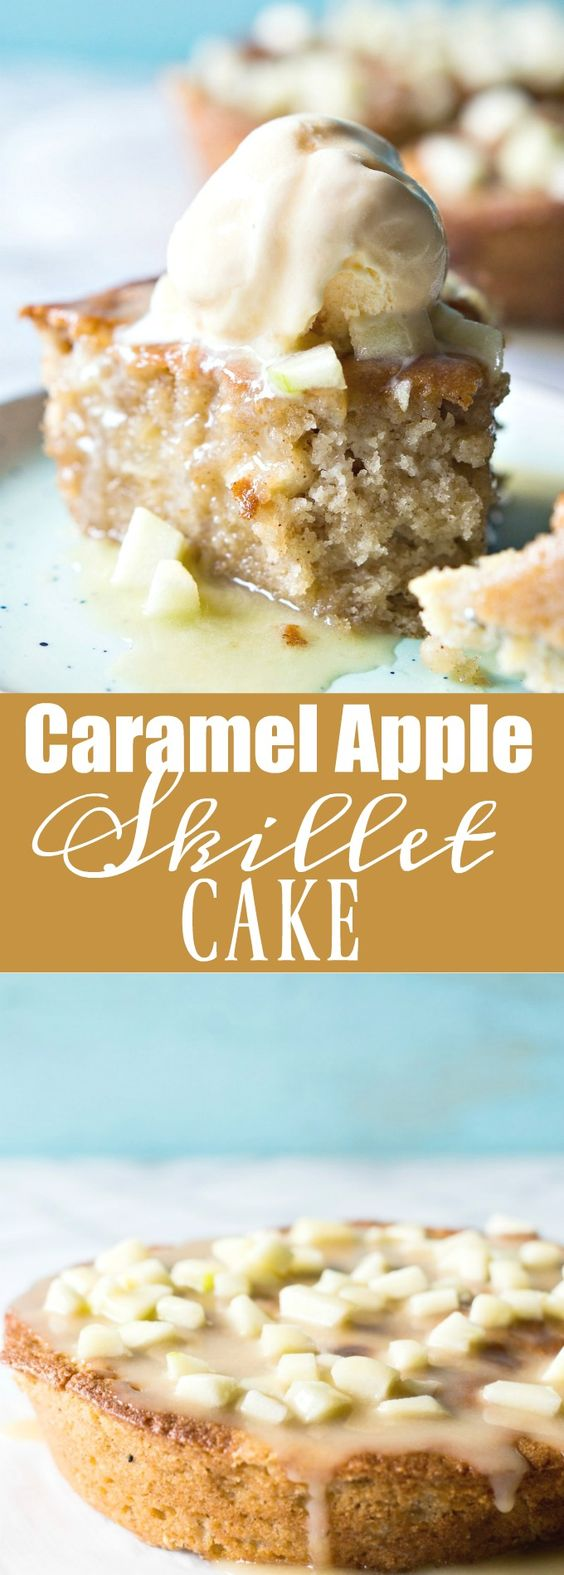 Caramel Apple Skillet cake is bursting with chunks of apple, drizzled with a homemade caramel glaze, and is perfect for Fall baking!